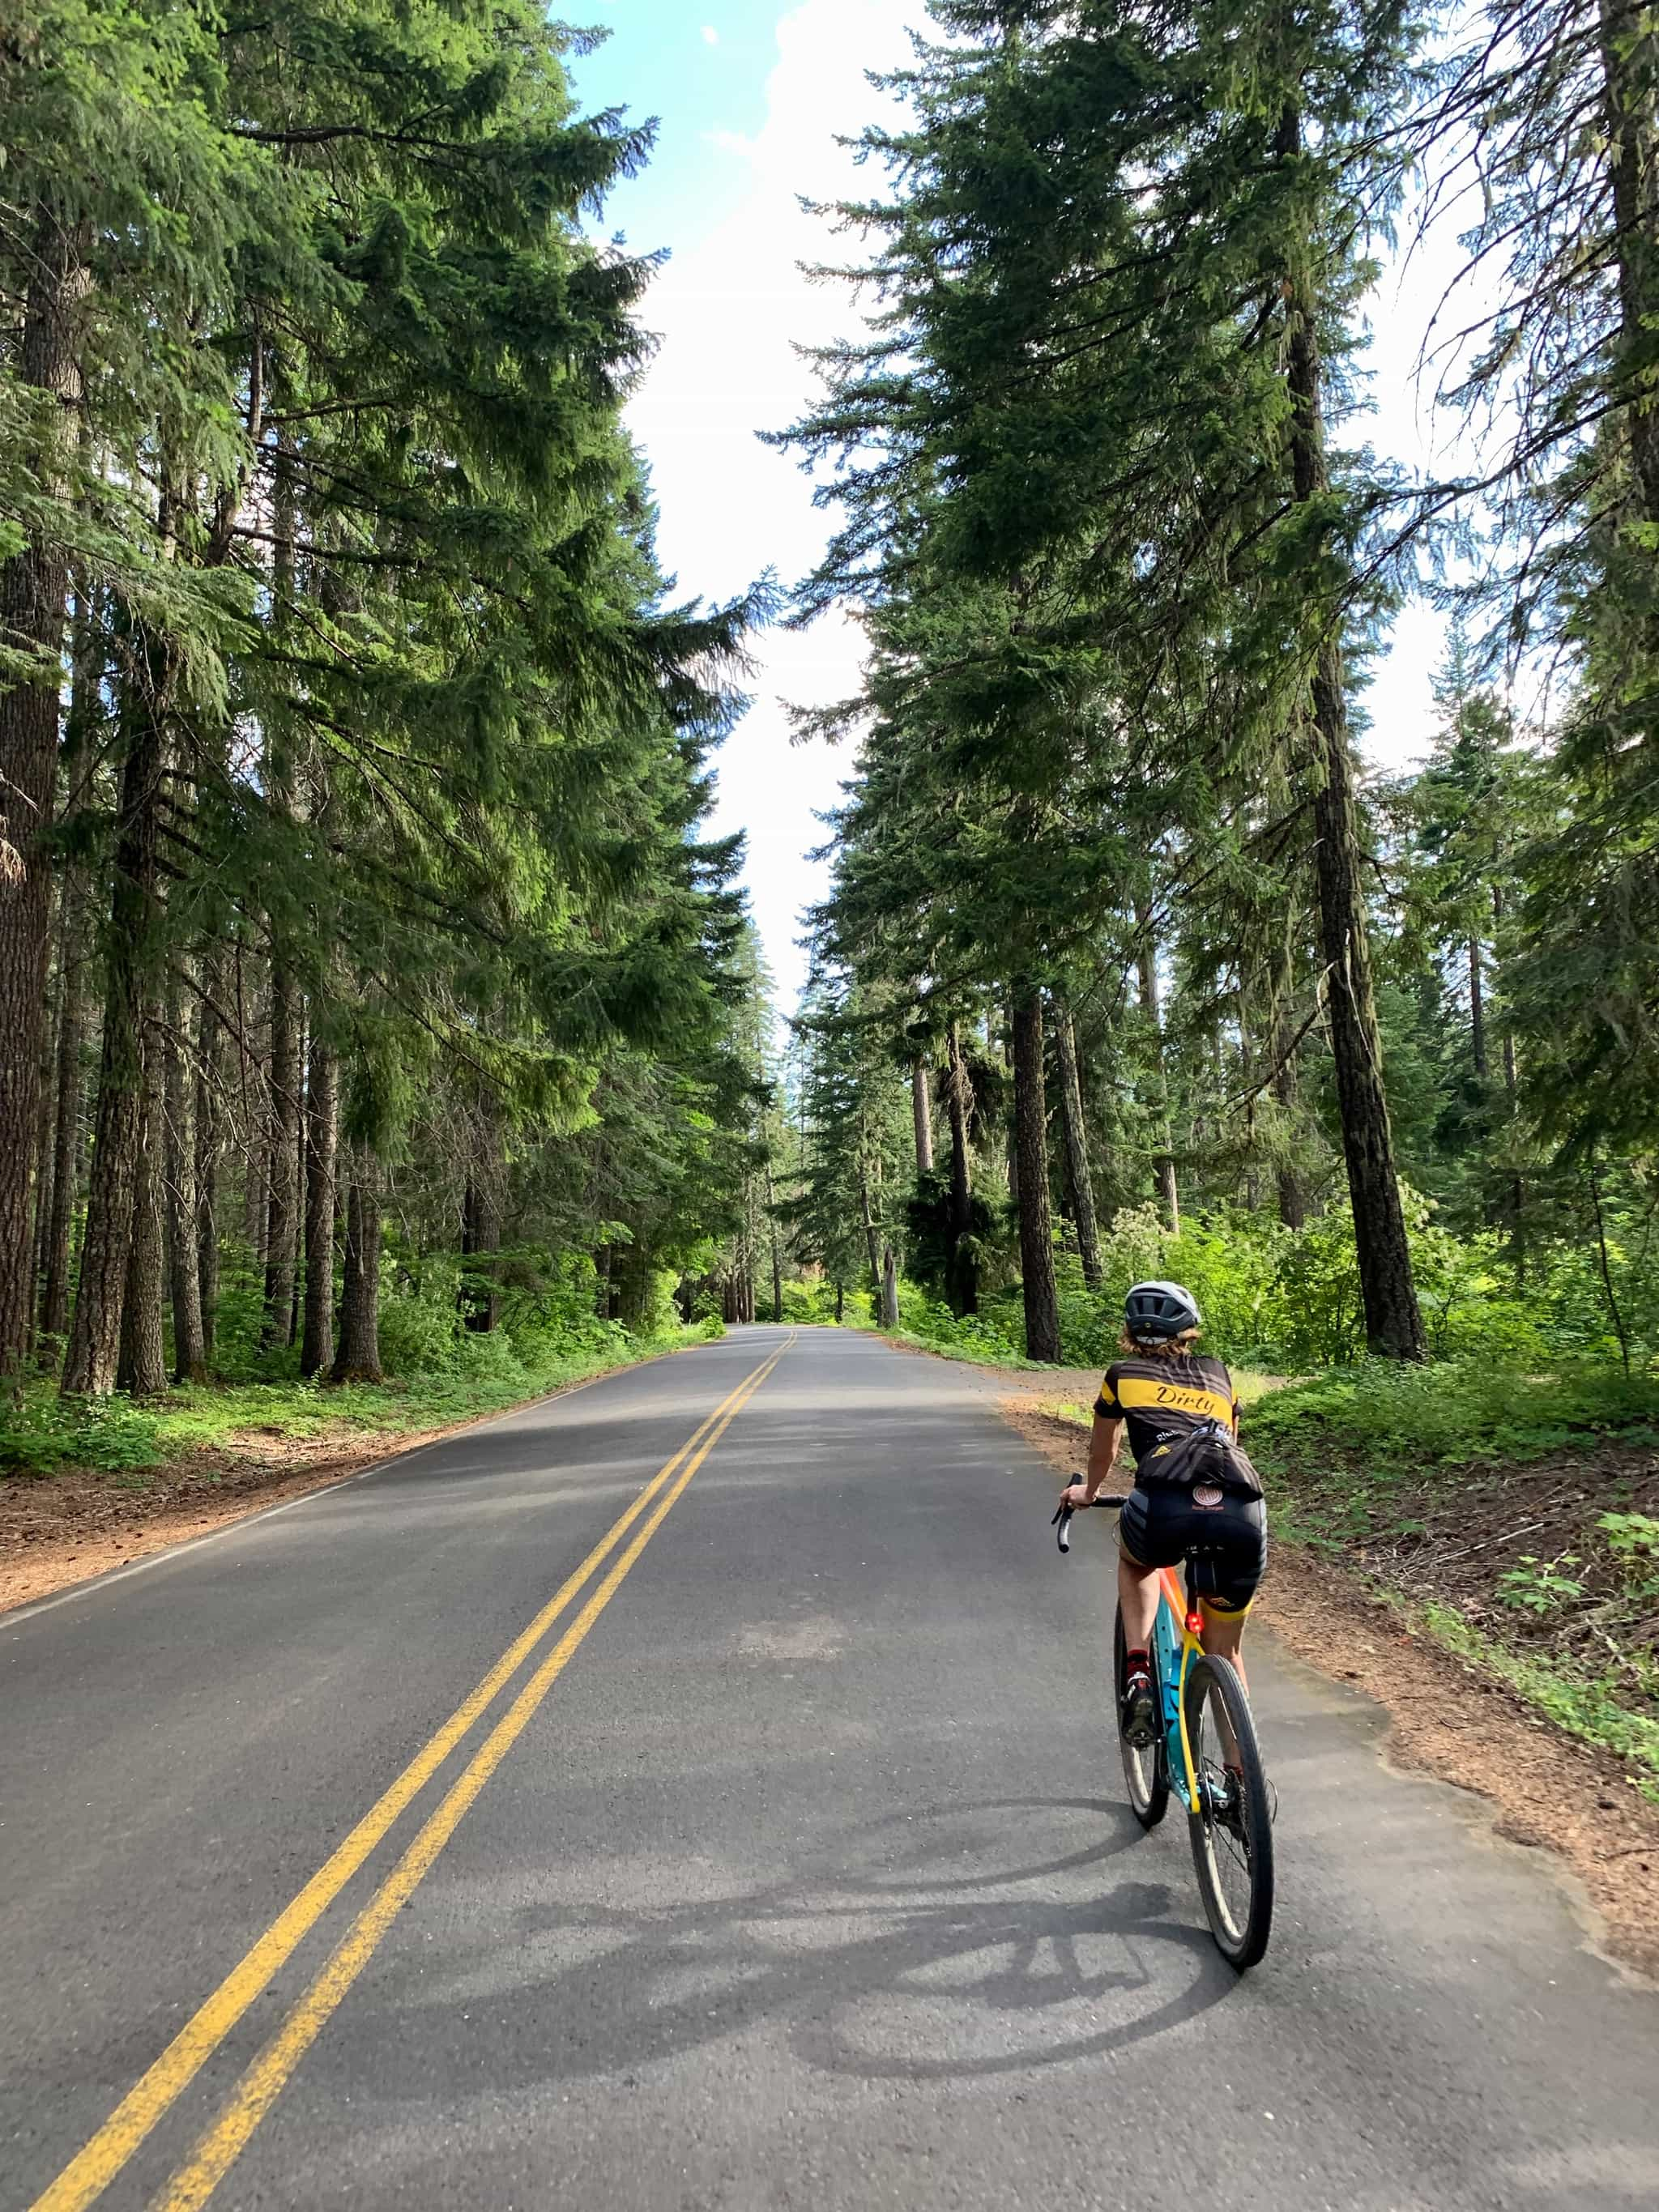 Cyclist on paved road NF-22 in Gifford Pinchot National Forest.